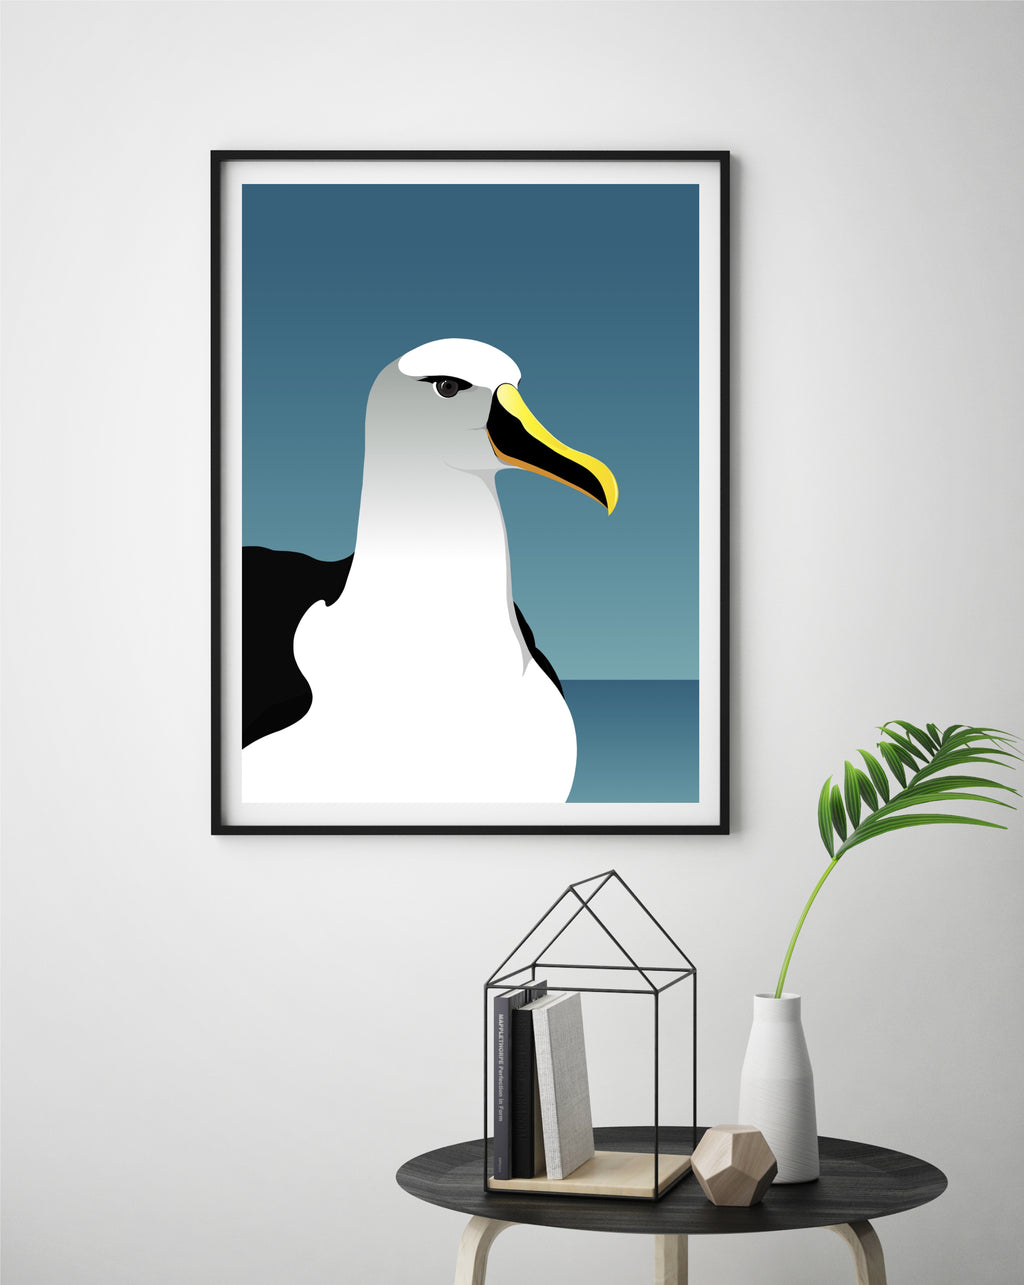 Albatross bird art print, framed print on wall